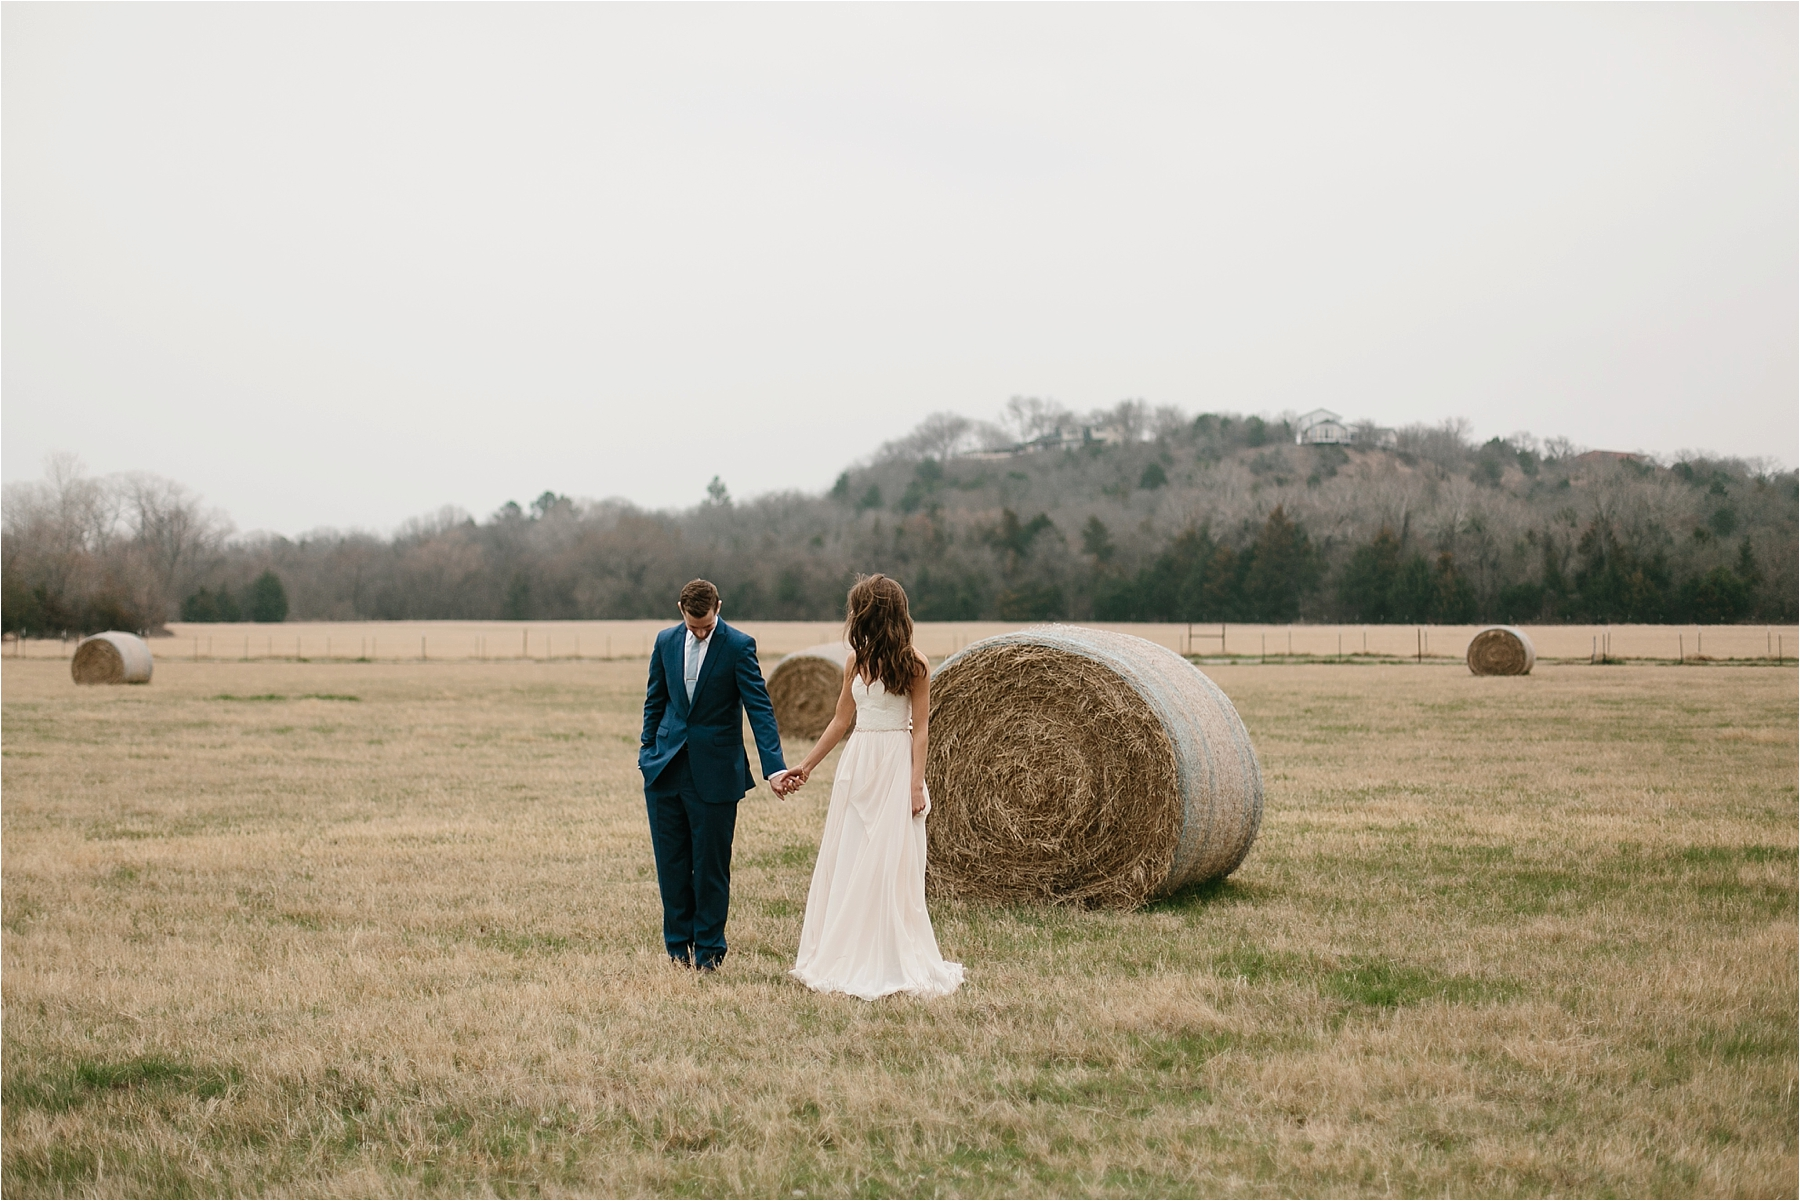 Lauren + Matt __ an intimate, emotional, blush pink, navy blue, and greenery toned wedding accents at the Brooks at Weatherford by North Texas Wedding Photographer Rachel Meagan Photography070